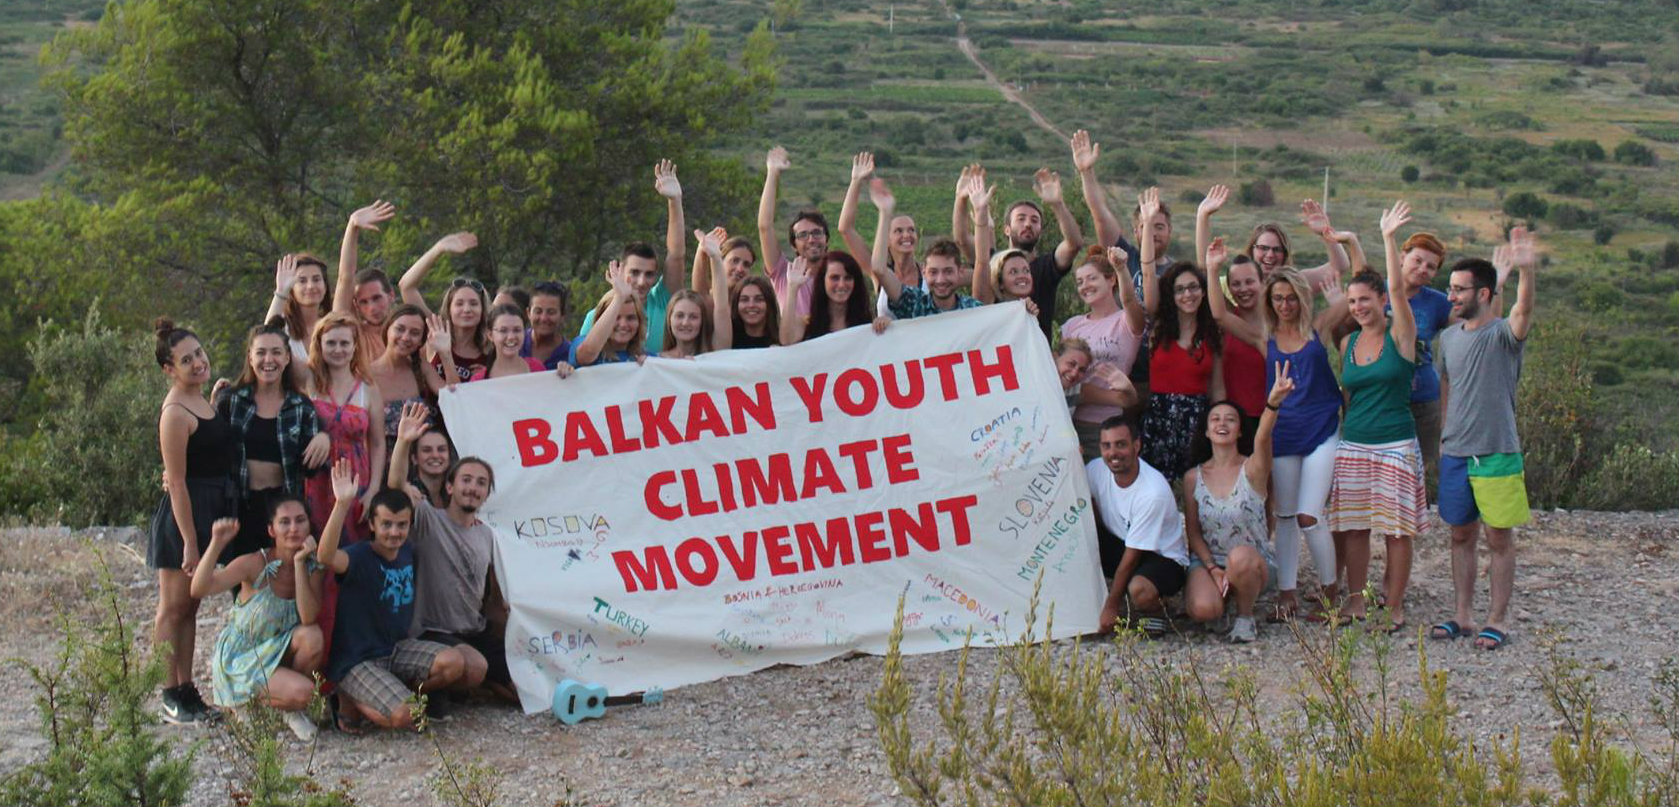 Balkan Youth Climate Movement